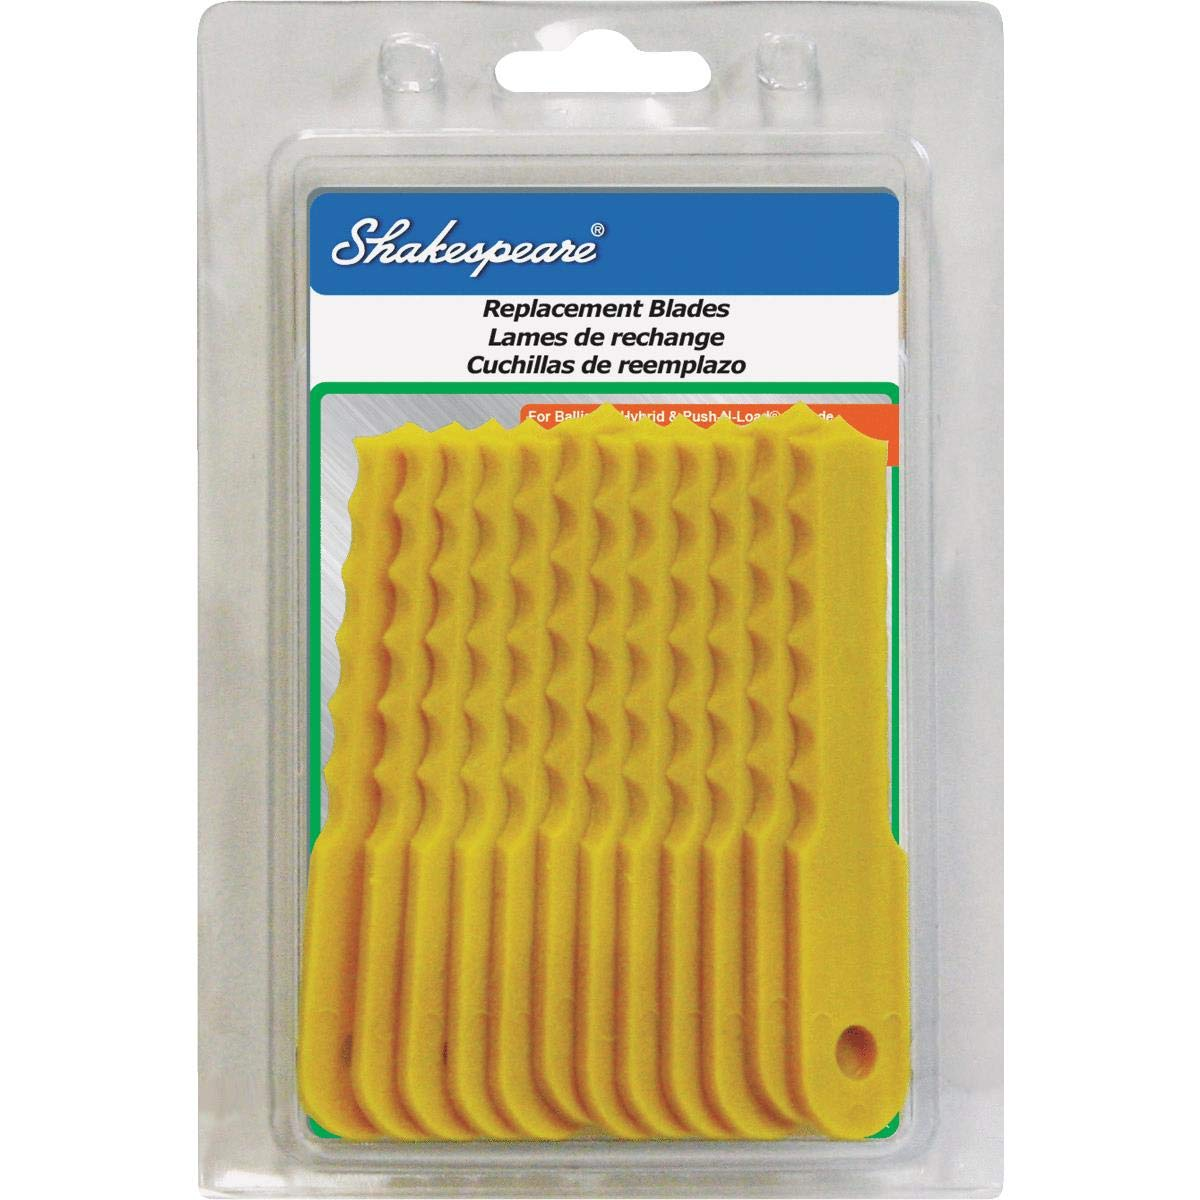 Shakespeare Push-N-Load Replacement Trimmer Blade - 1 Each by Shakespeare Mono